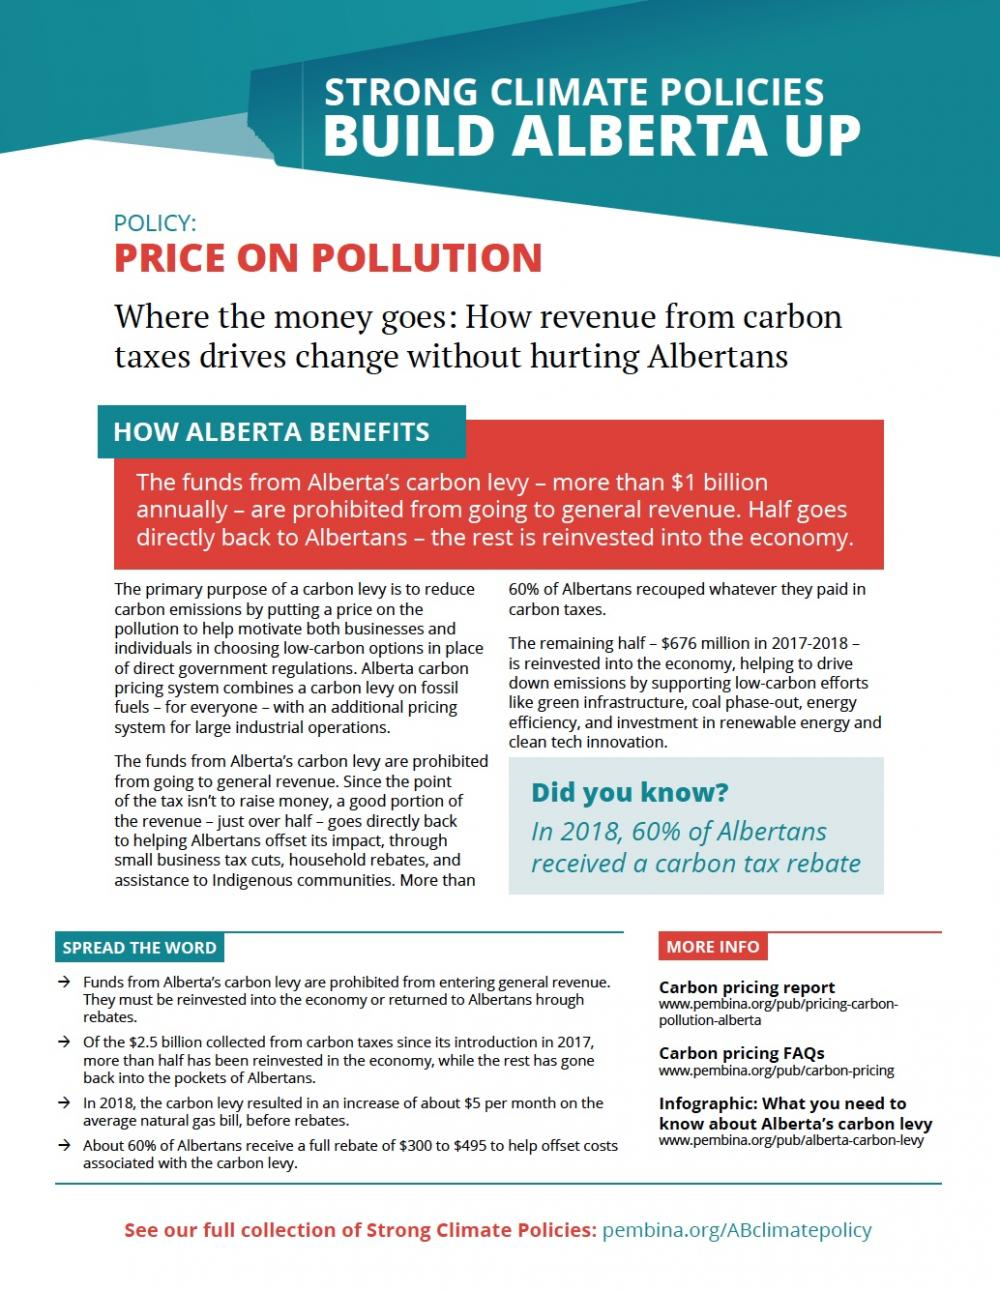 Where the money goes: How revenue from carbon taxes drives